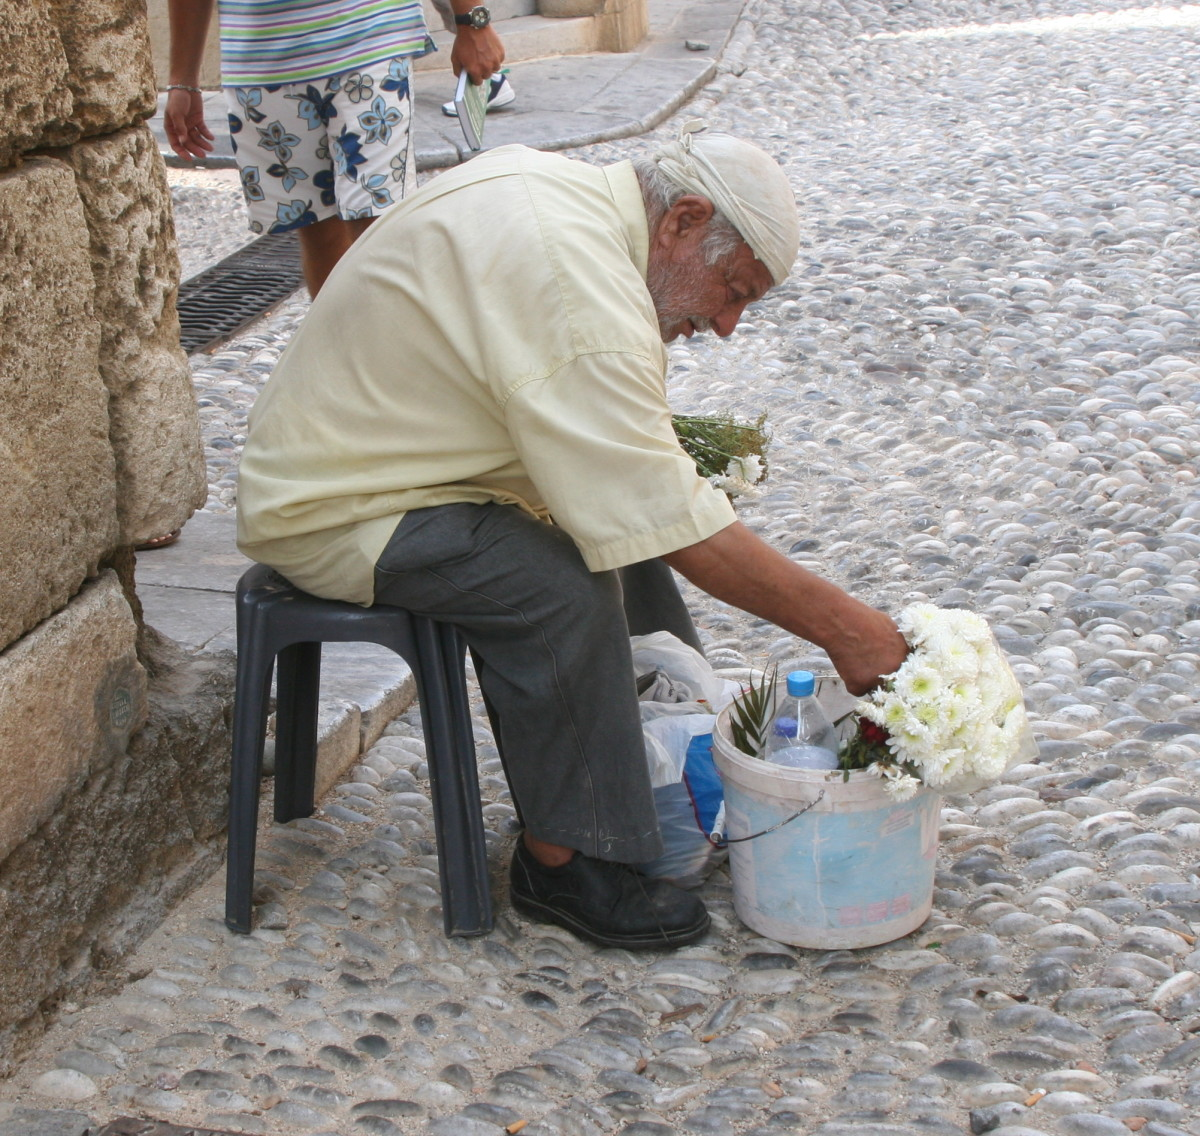 Man selling flowers in Rhodes, Greece